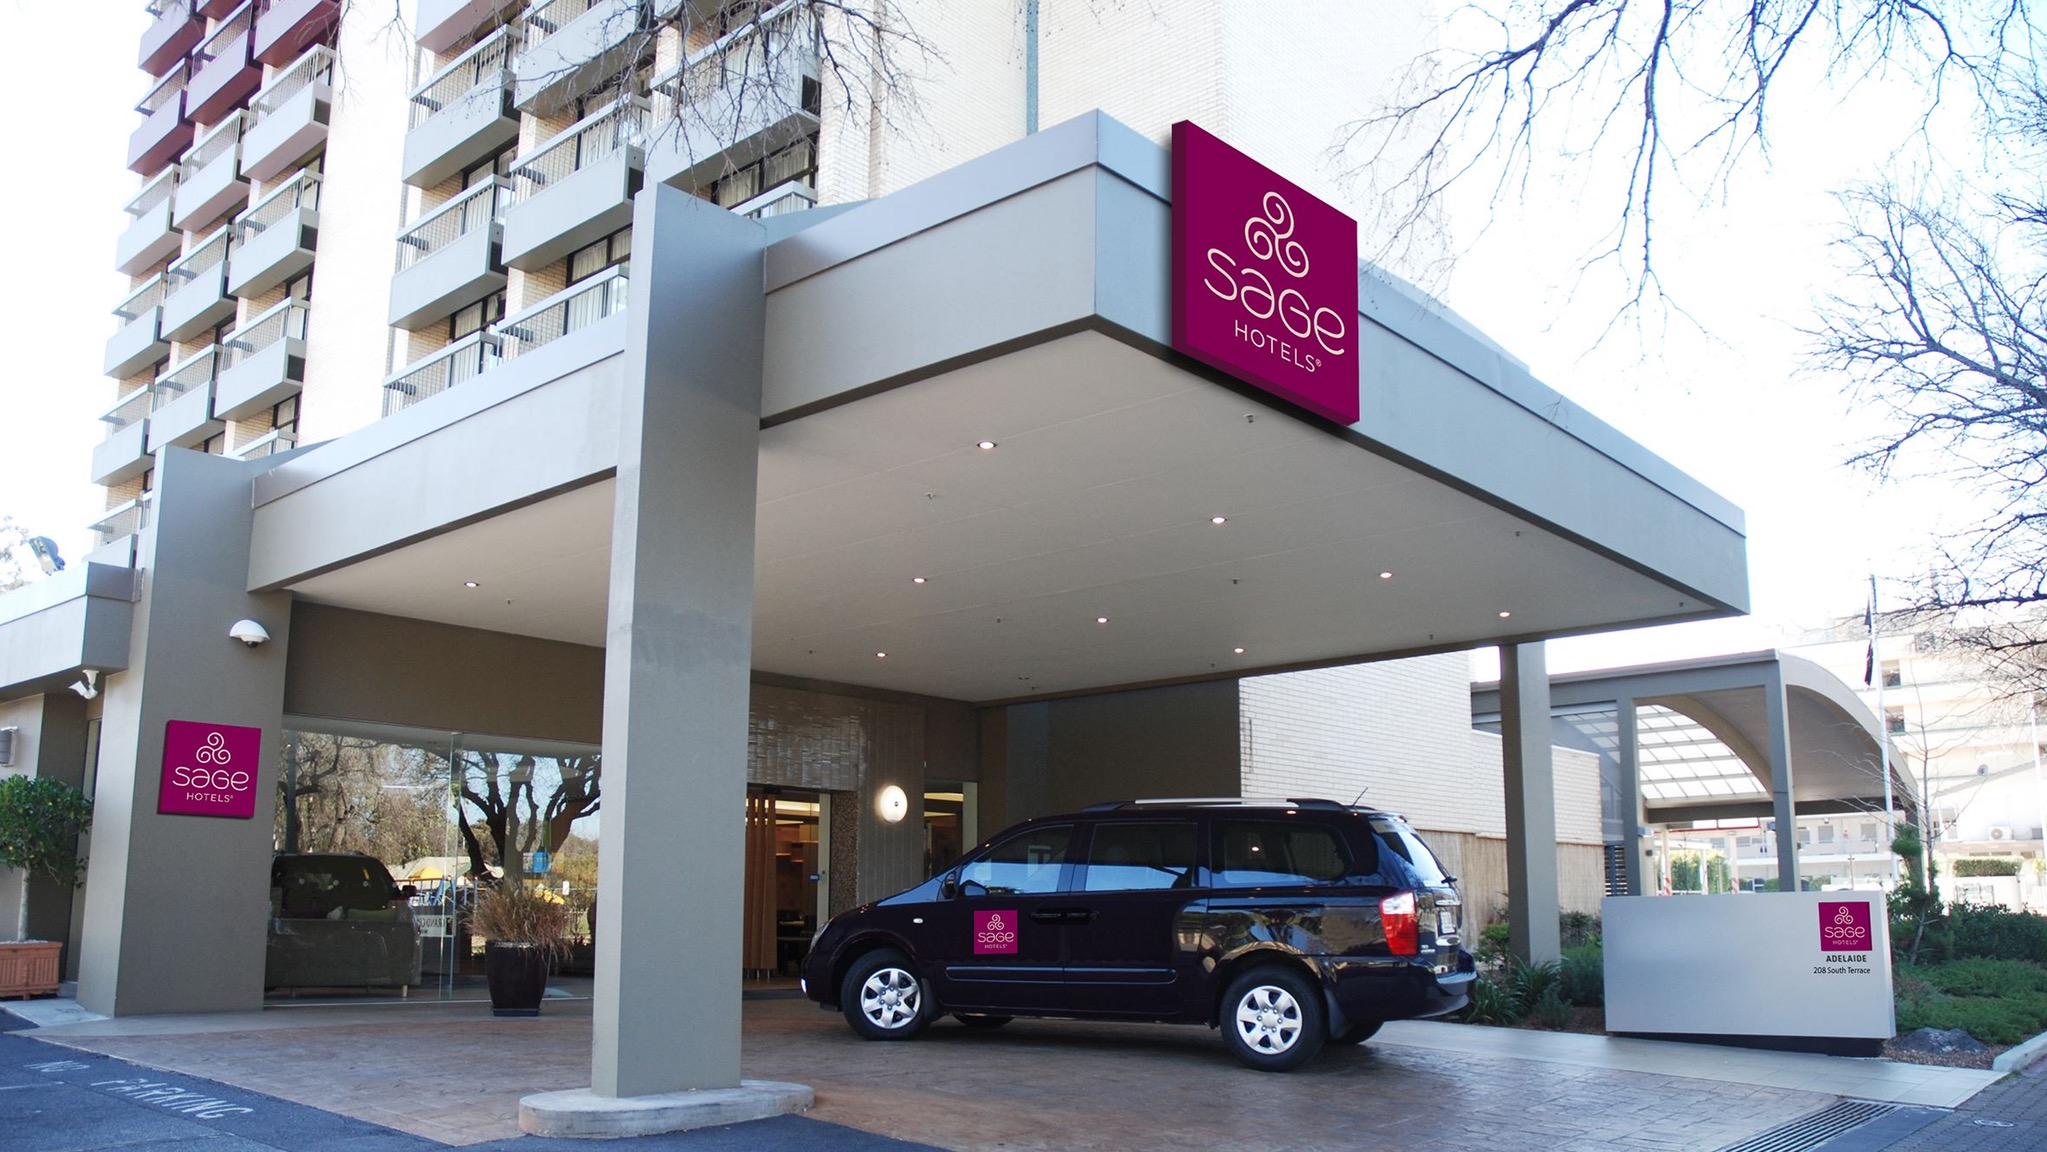 Sage Hotel Adelaide Logo and Images